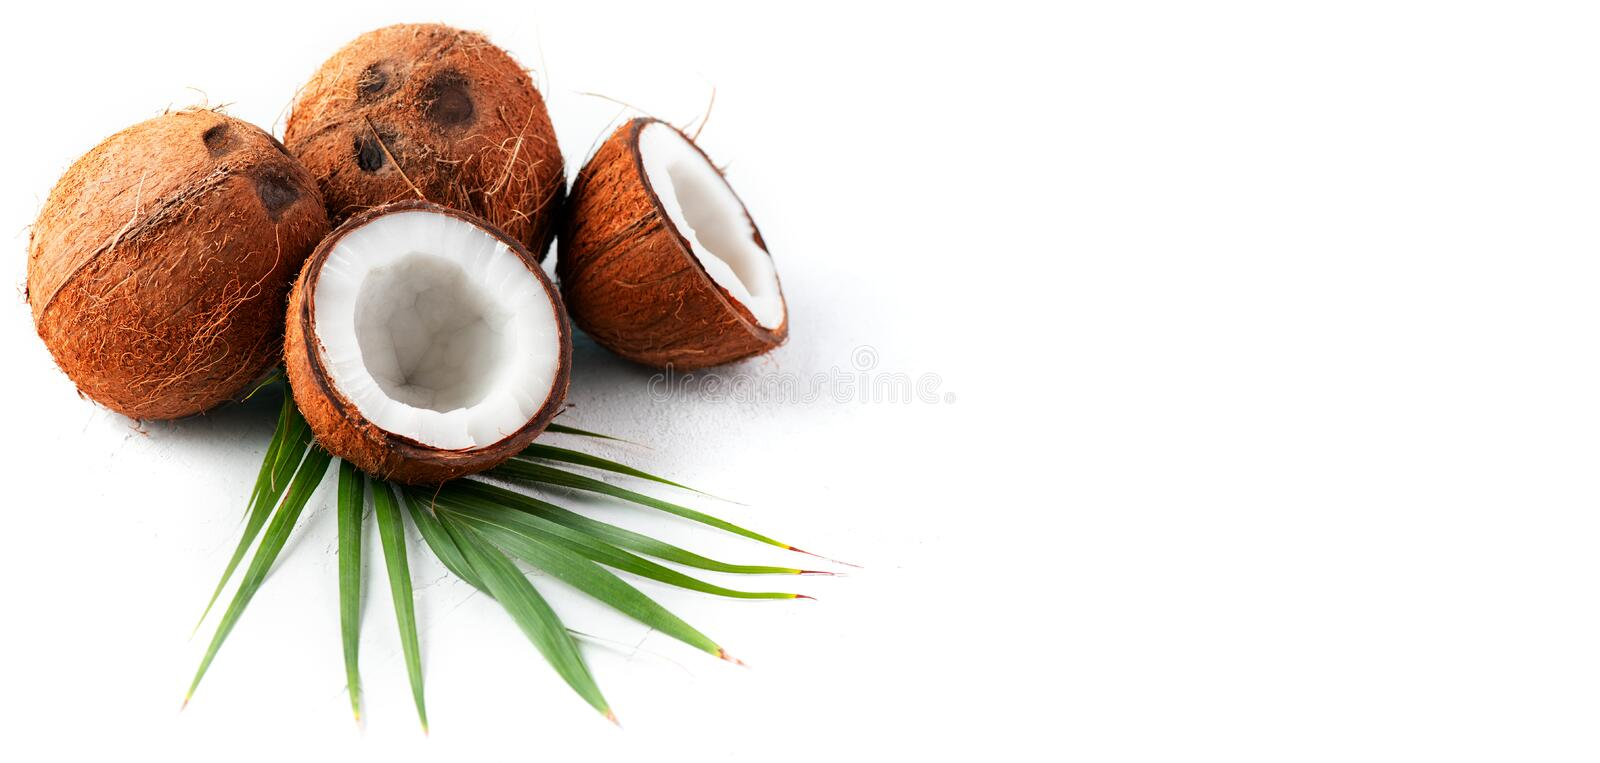 Coconut with coconuts palm tree leaf isolated on a white background. Fresh coco nut royalty free stock photo